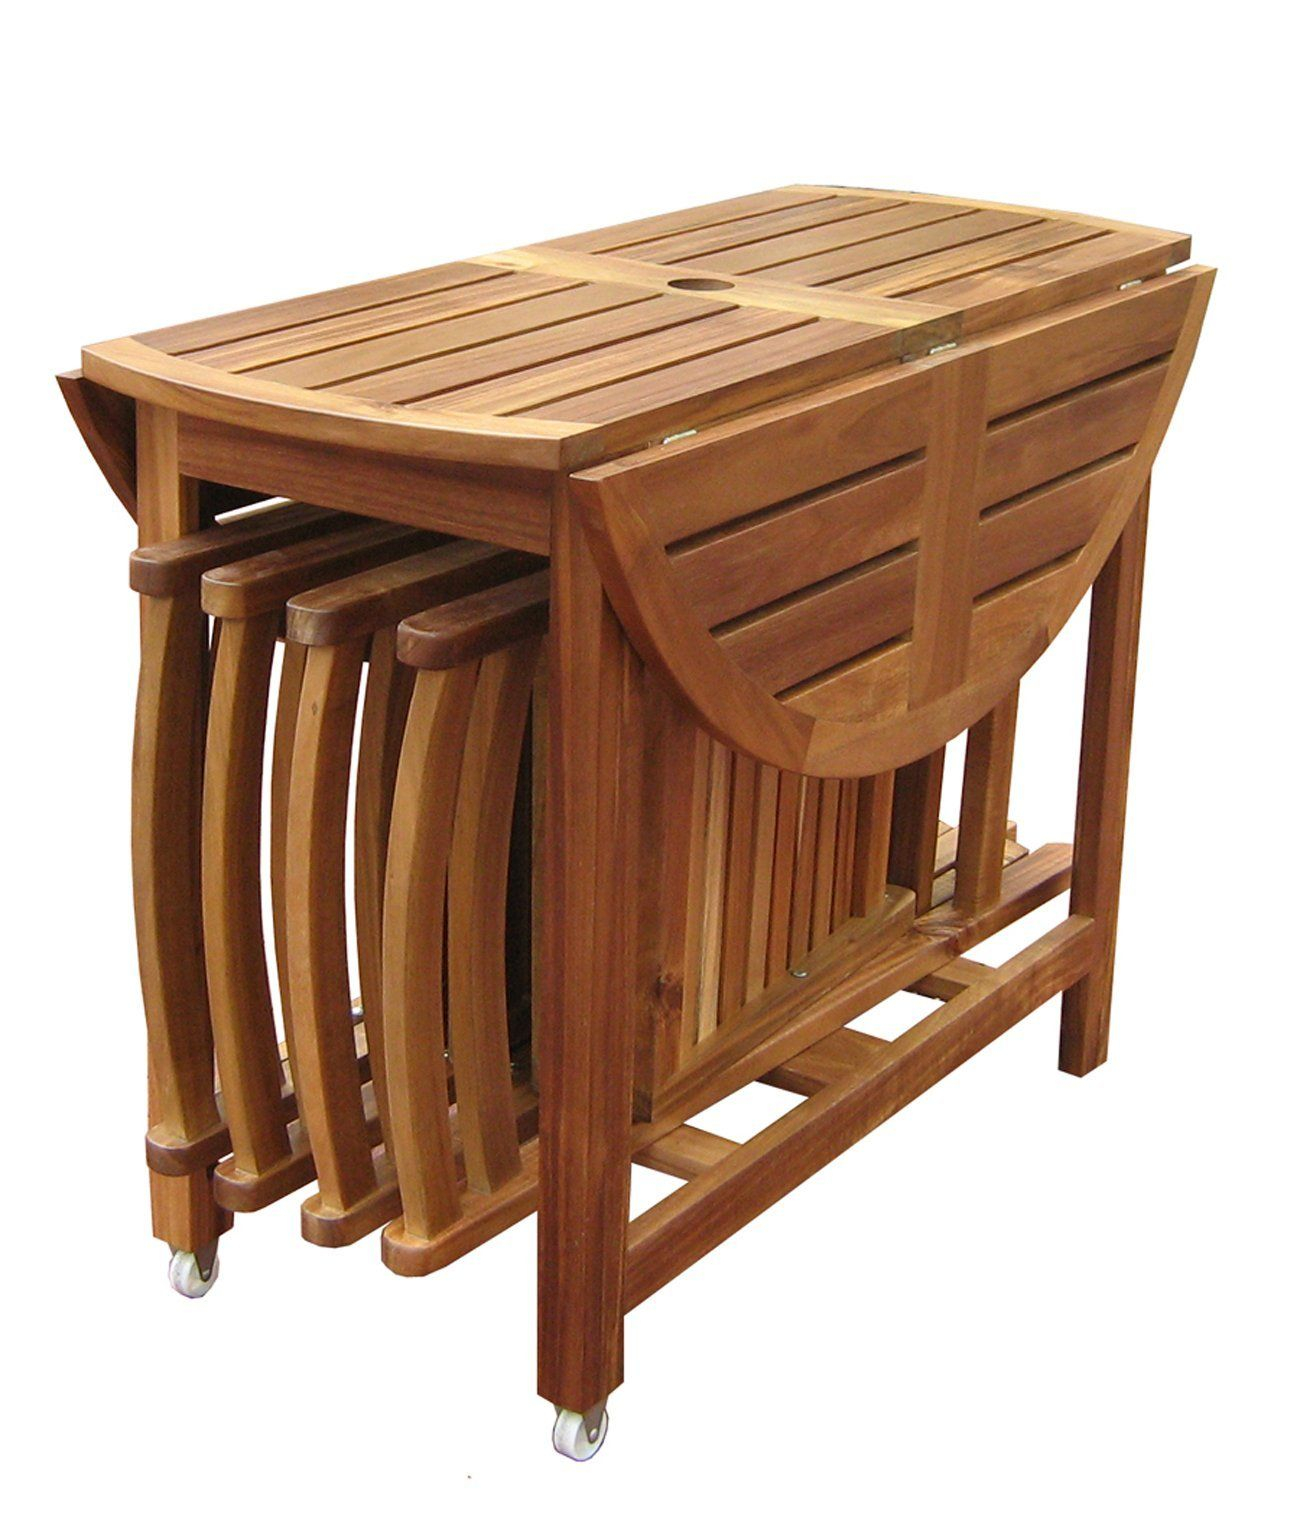 Acacia Folding Table And Chair Set The Sides Of The Acacia with size 1300 X 1528